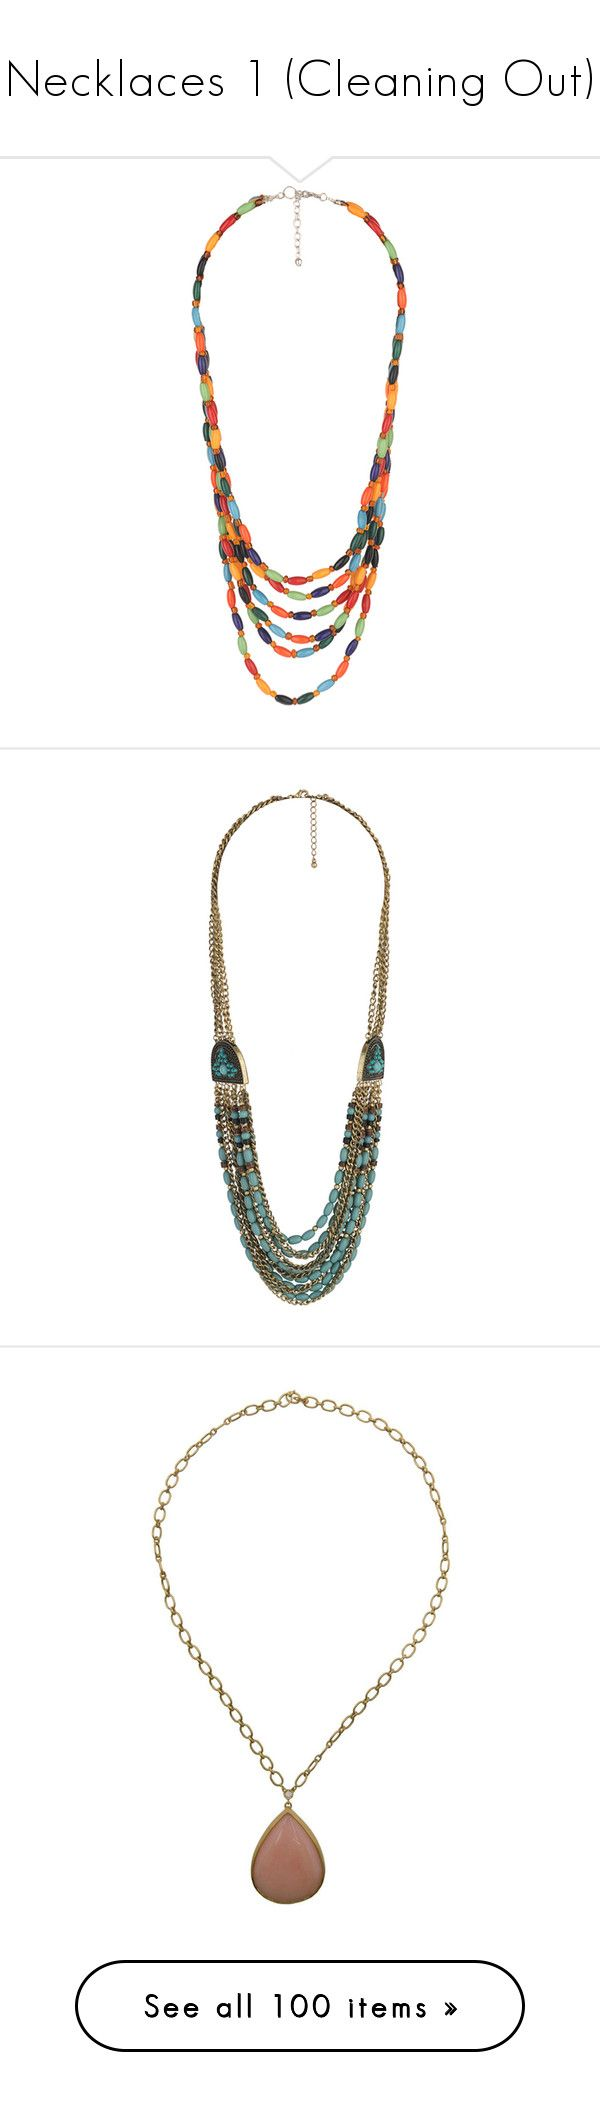 """""""Necklaces 1 (Cleaning Out)"""" by dev-lynn ❤ liked on Polyvore featuring jewelry, necklaces, accessories, multi color beads necklace, layered chain necklace, tri color necklace, multi color necklace, double layer necklace, women and beading necklaces"""